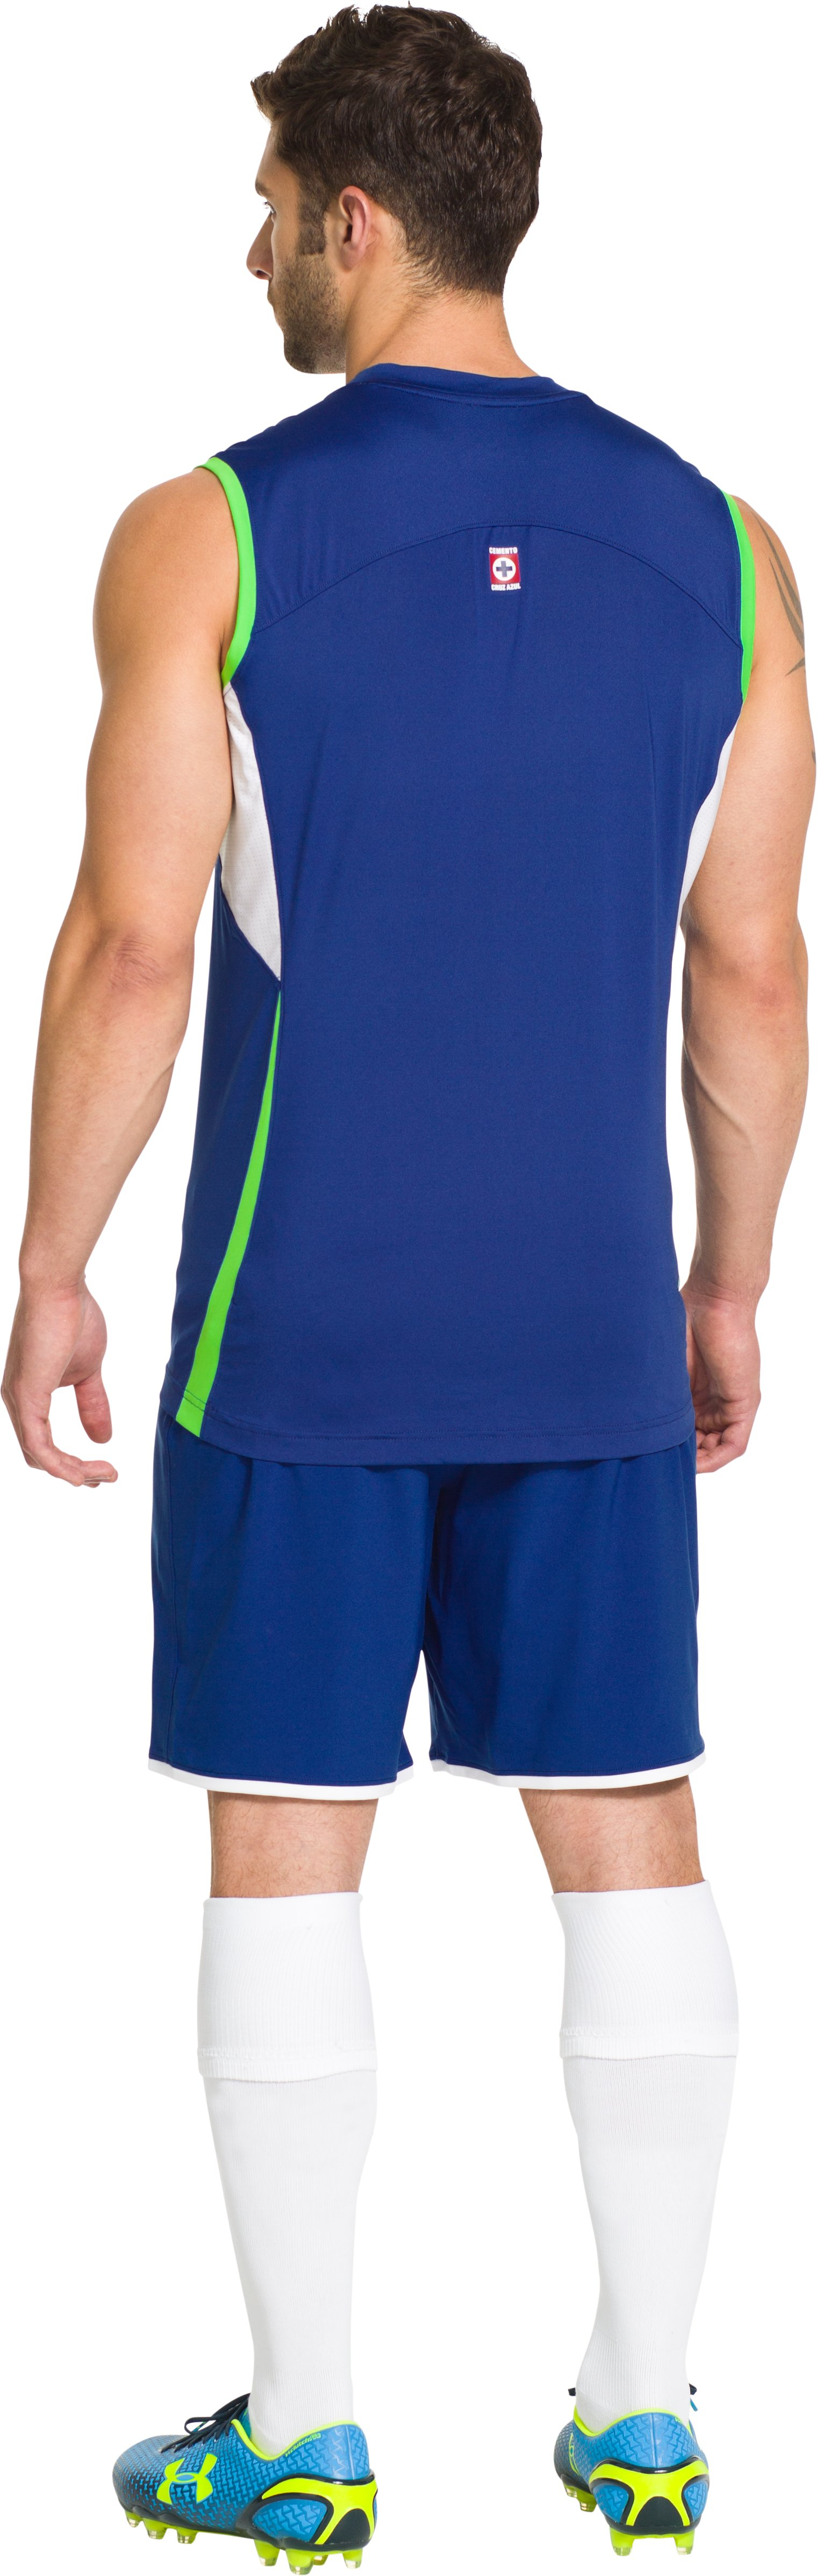 Men's Cruz Azul 14/15 Sleeveless Training Shirt, Royal, Back